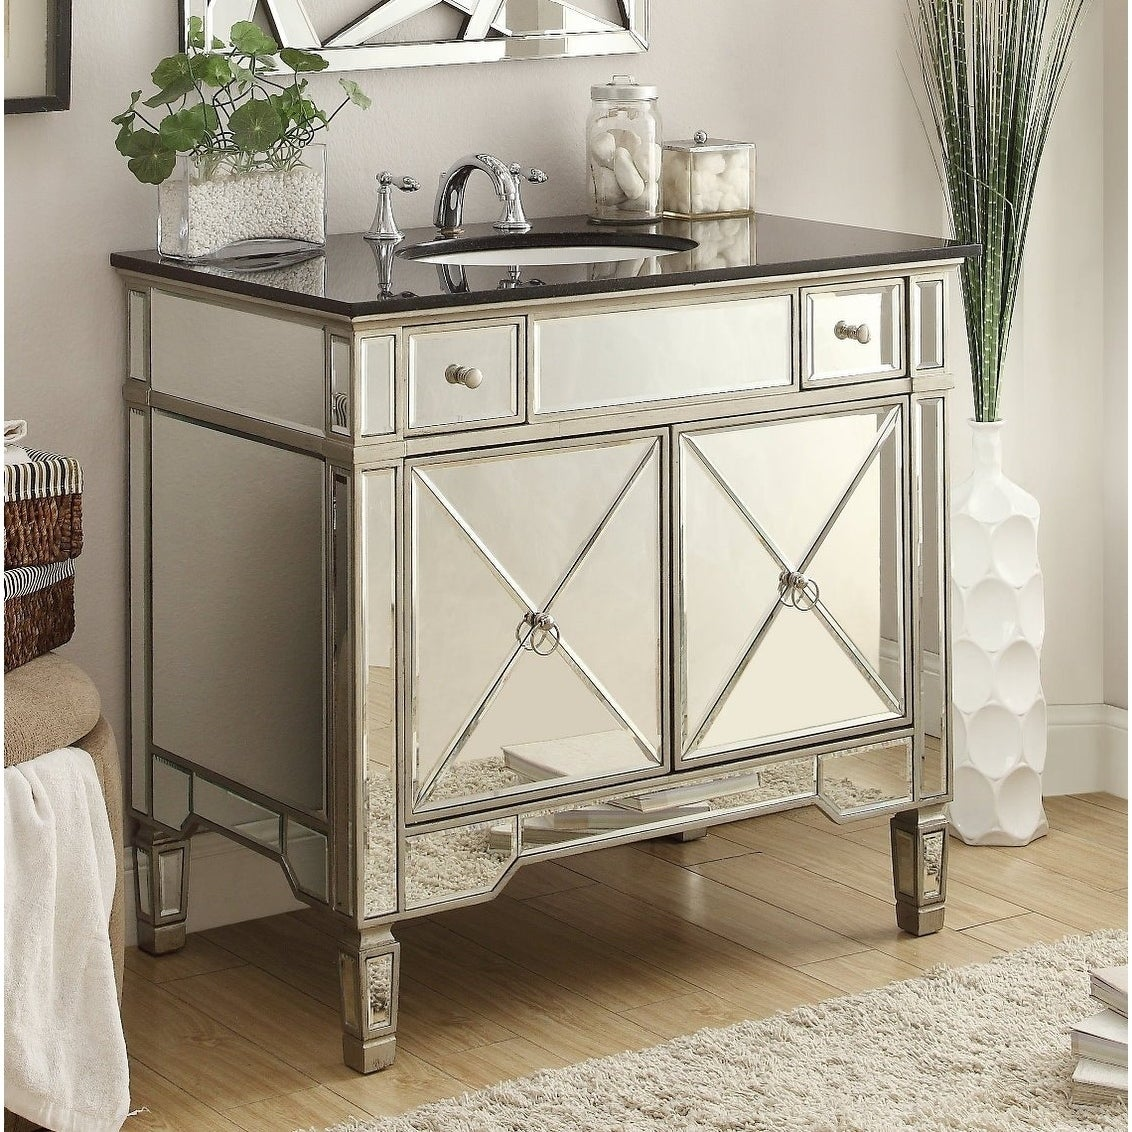 36 Benton Collection Ashlyn Modern Mirrored Bathroom Sink Vanity On Sale Overstock 20729324